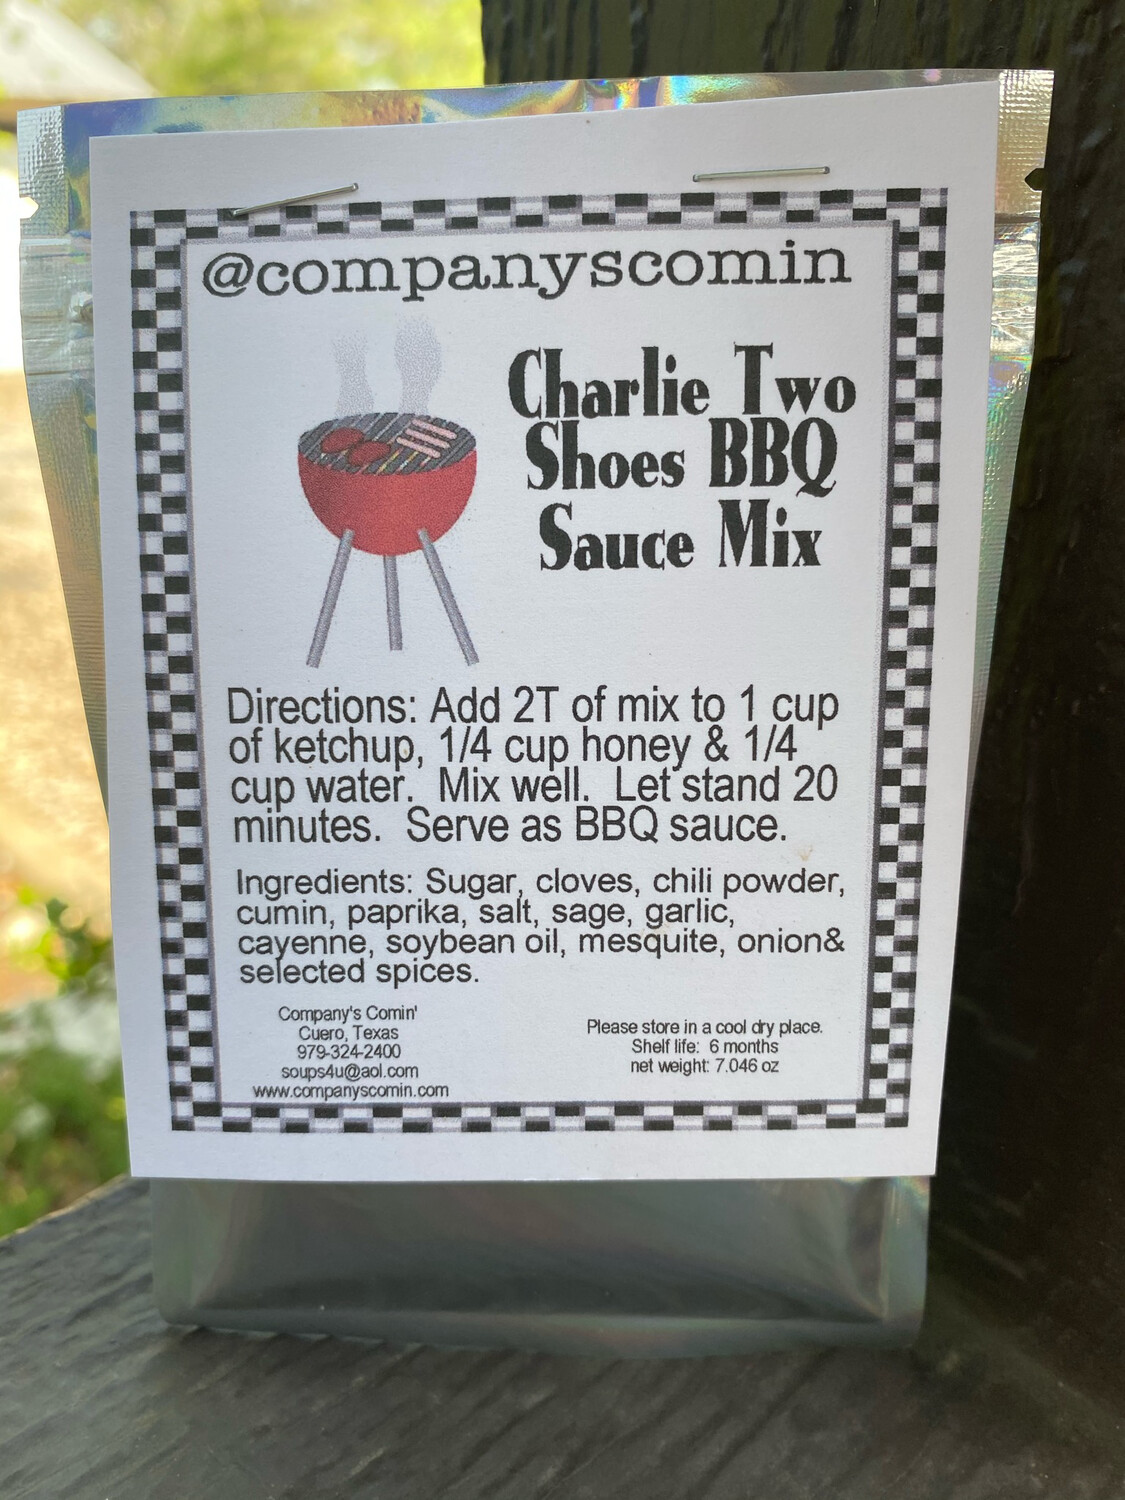 Charlie Two Shoes BBQ Sauce Mix